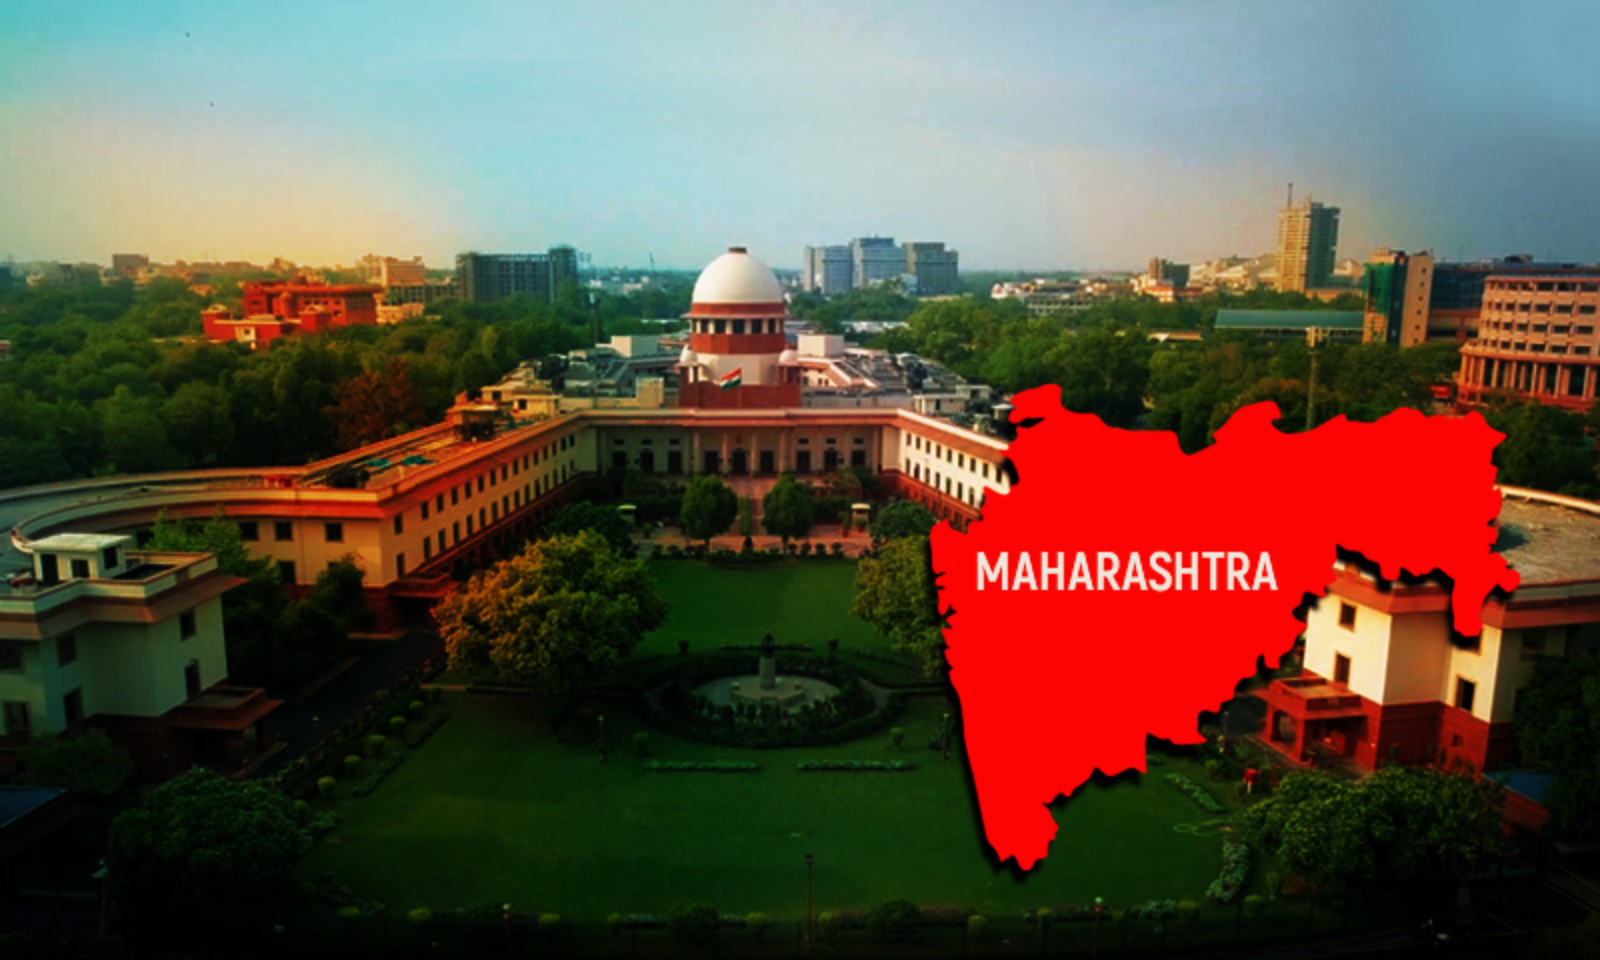 Collection Of OBC Information In Census 2021 Not Feasible : Centre Tells Supreme Court Opposing Maharashtras Plea